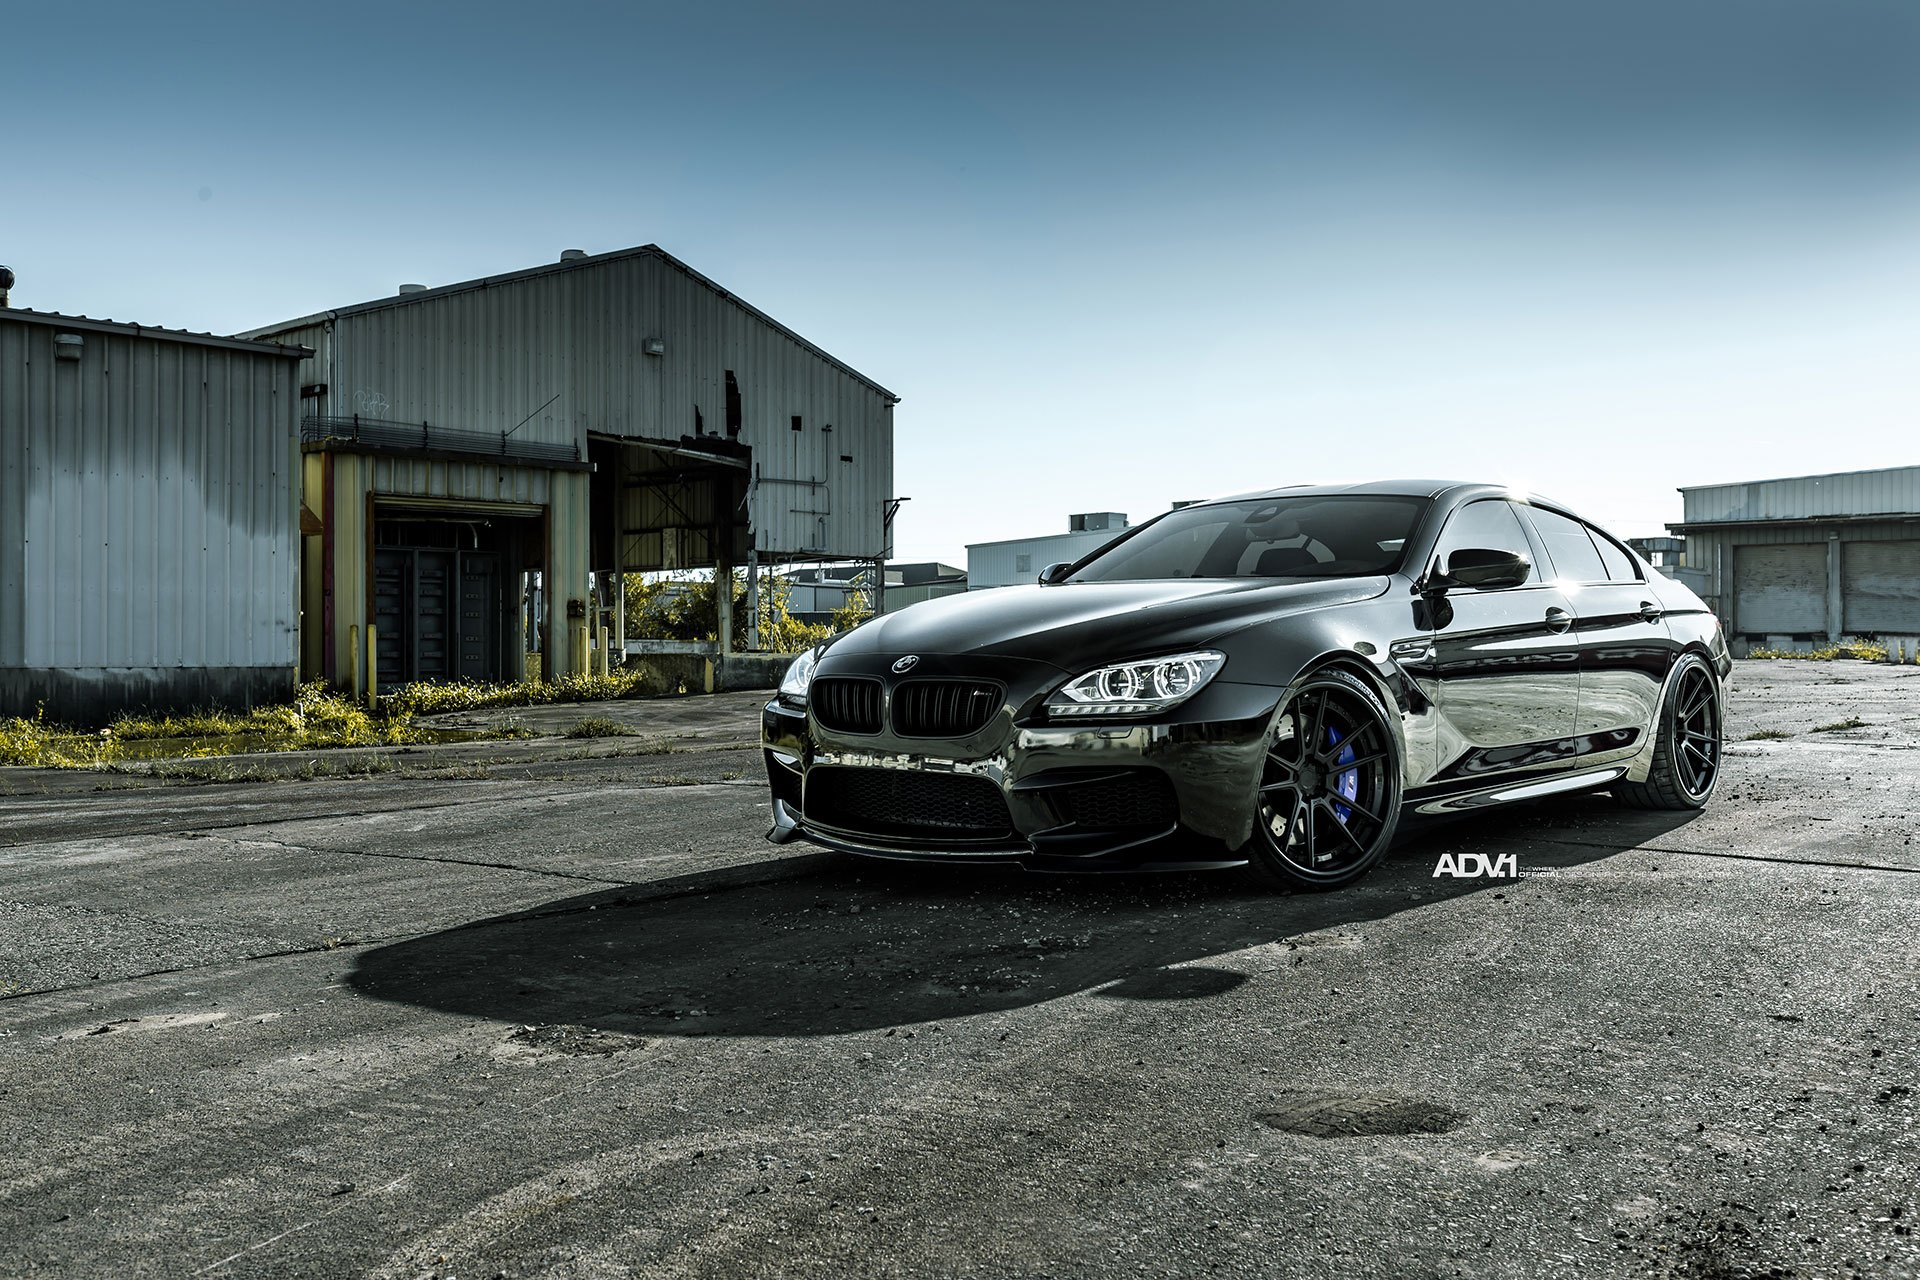 Sinister Looks Of Bmw M6 Gran Coupe With Purple Brakes And Black Rims Carid Com Gallery